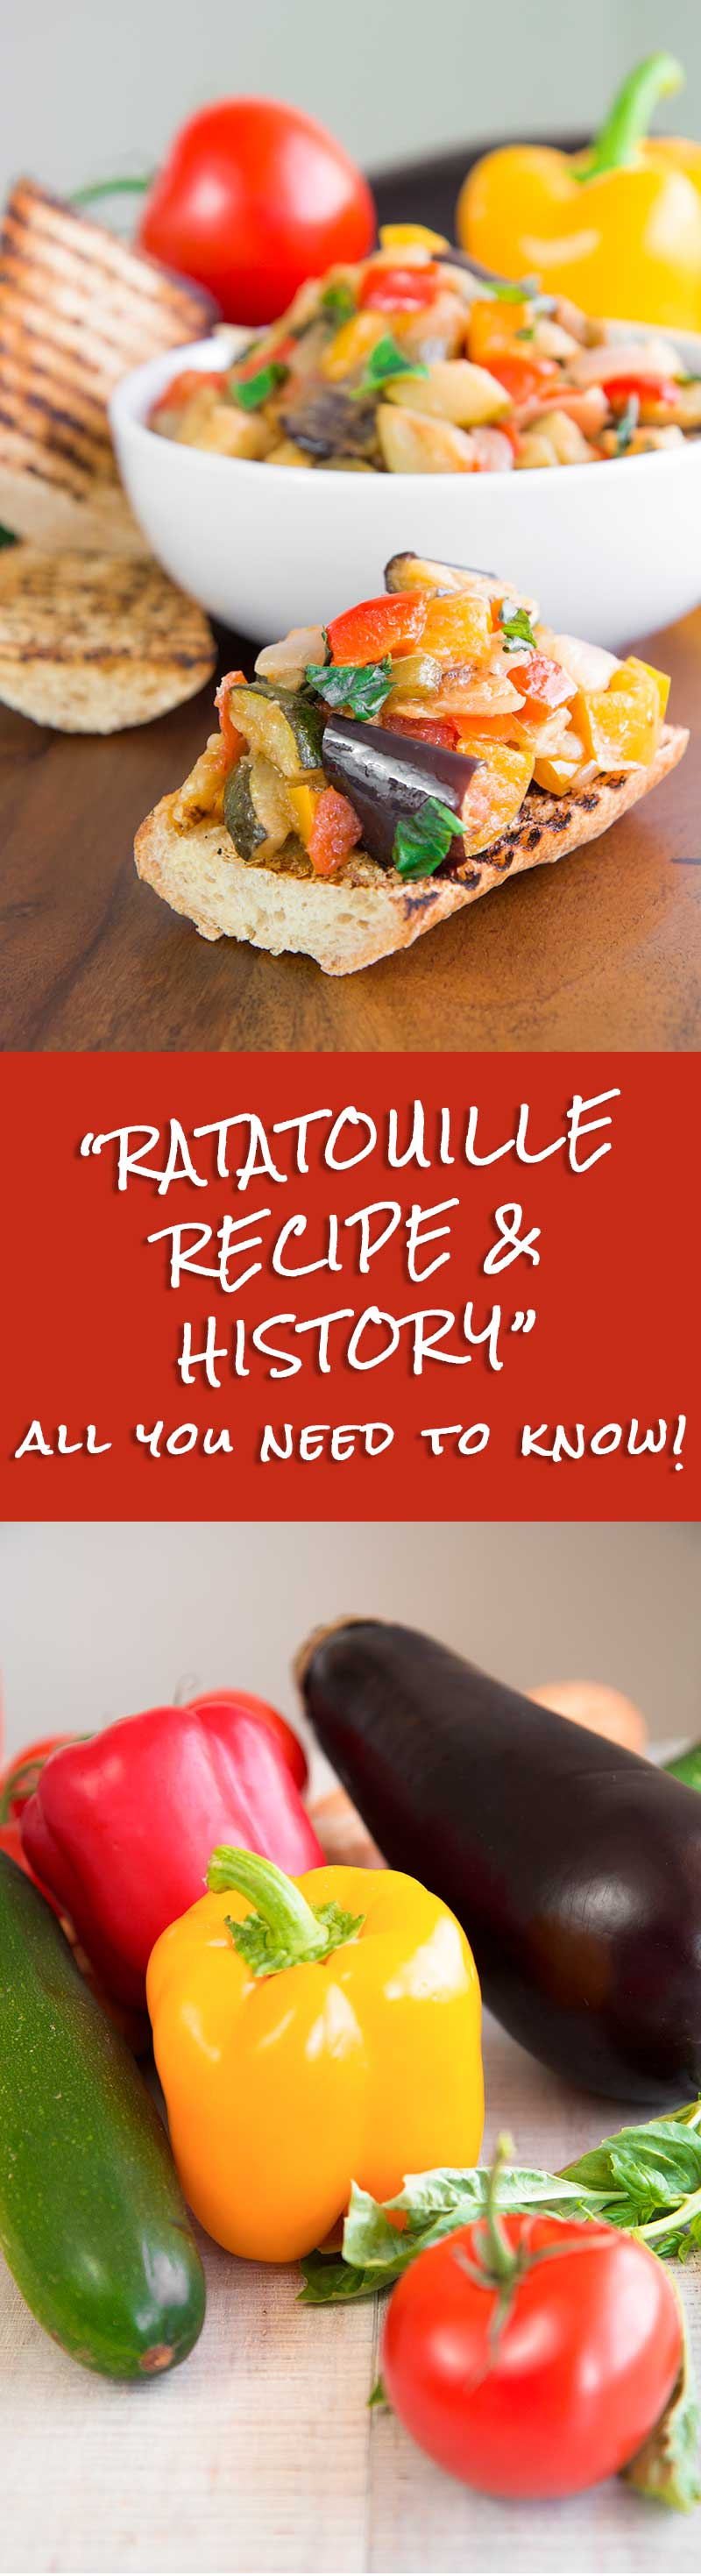 RATATOUILLE RECIPE & HISTORY - traditional French appetizer and side dish